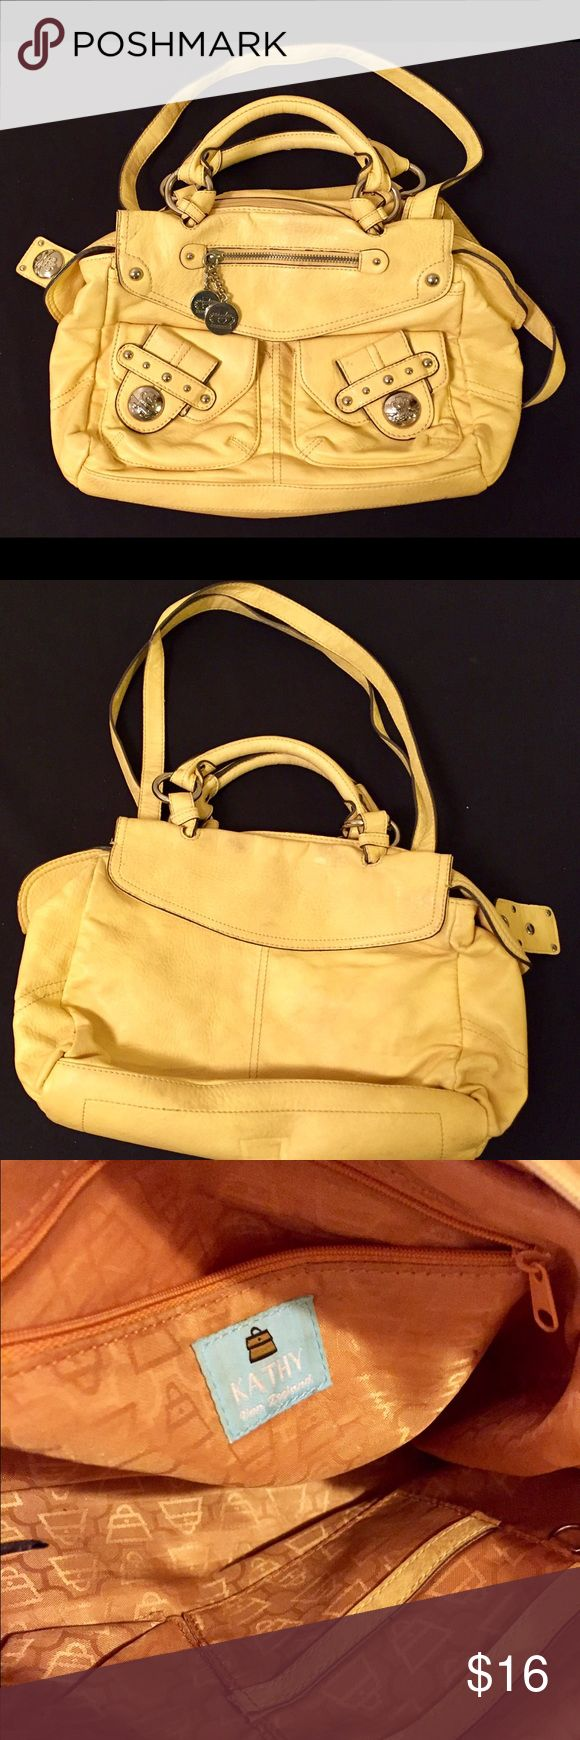 Kathy Van Zeeland yellow 100% Vinyl Purse. Yellow 100% Vinyl with 100% Polyester Lining. Multiple pockets on the outside and inside. Sliver metal buttons on pockets. Some signs of being used but not to noticeable. Kathy Van Zeeland Bags